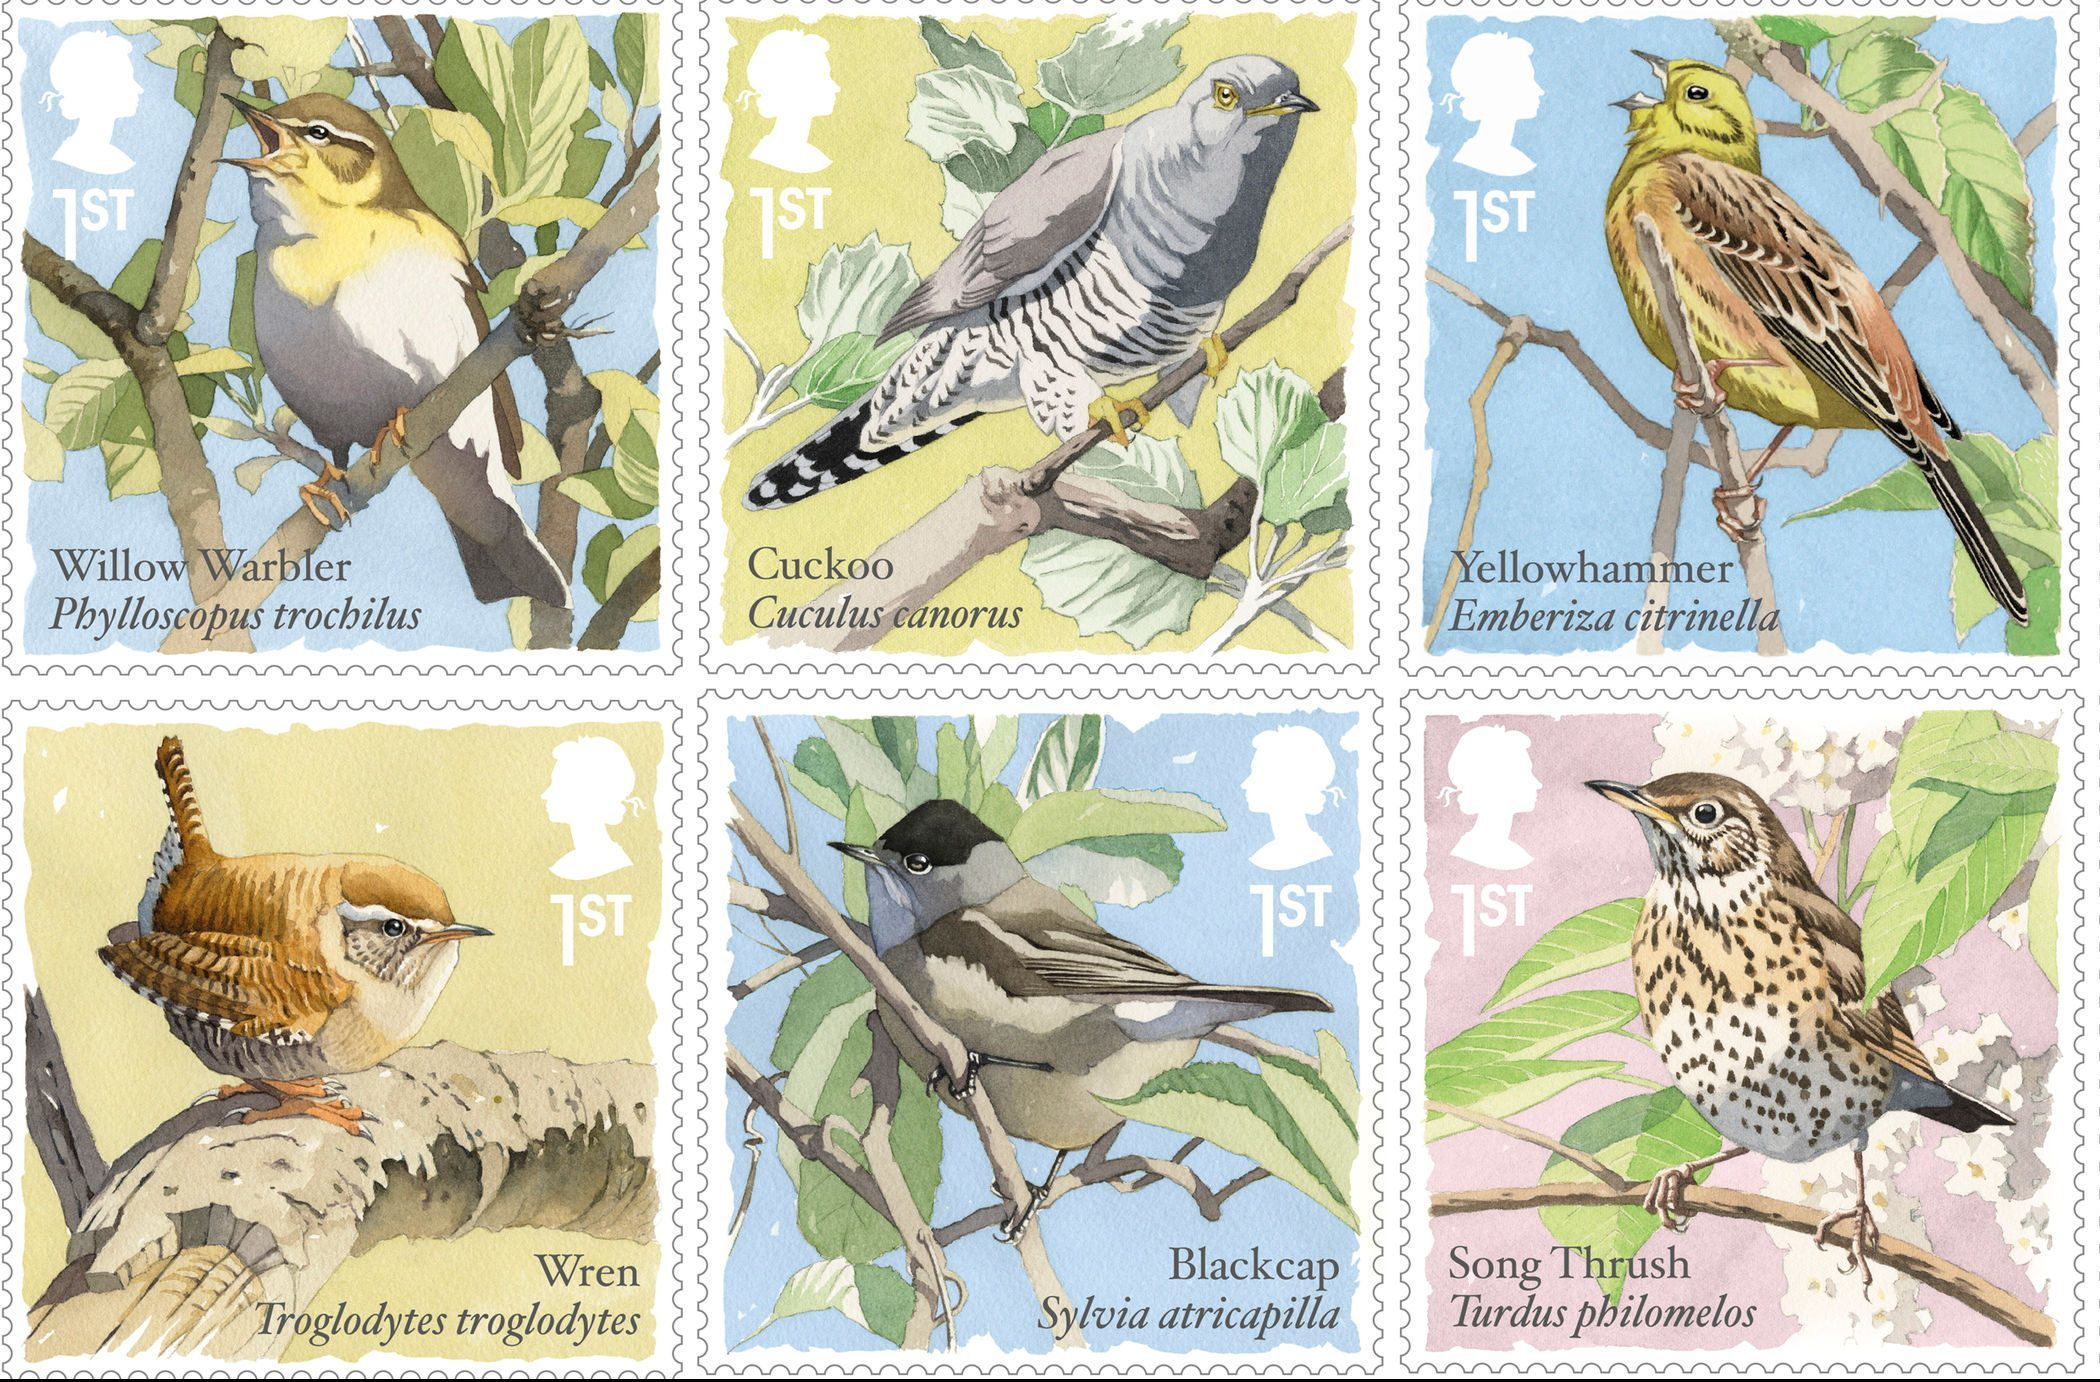 The stamps explore some familiar and less well-known varieties of songbirds, to mark International Dawn Chorus Day (Royal Mail/PA Wire)